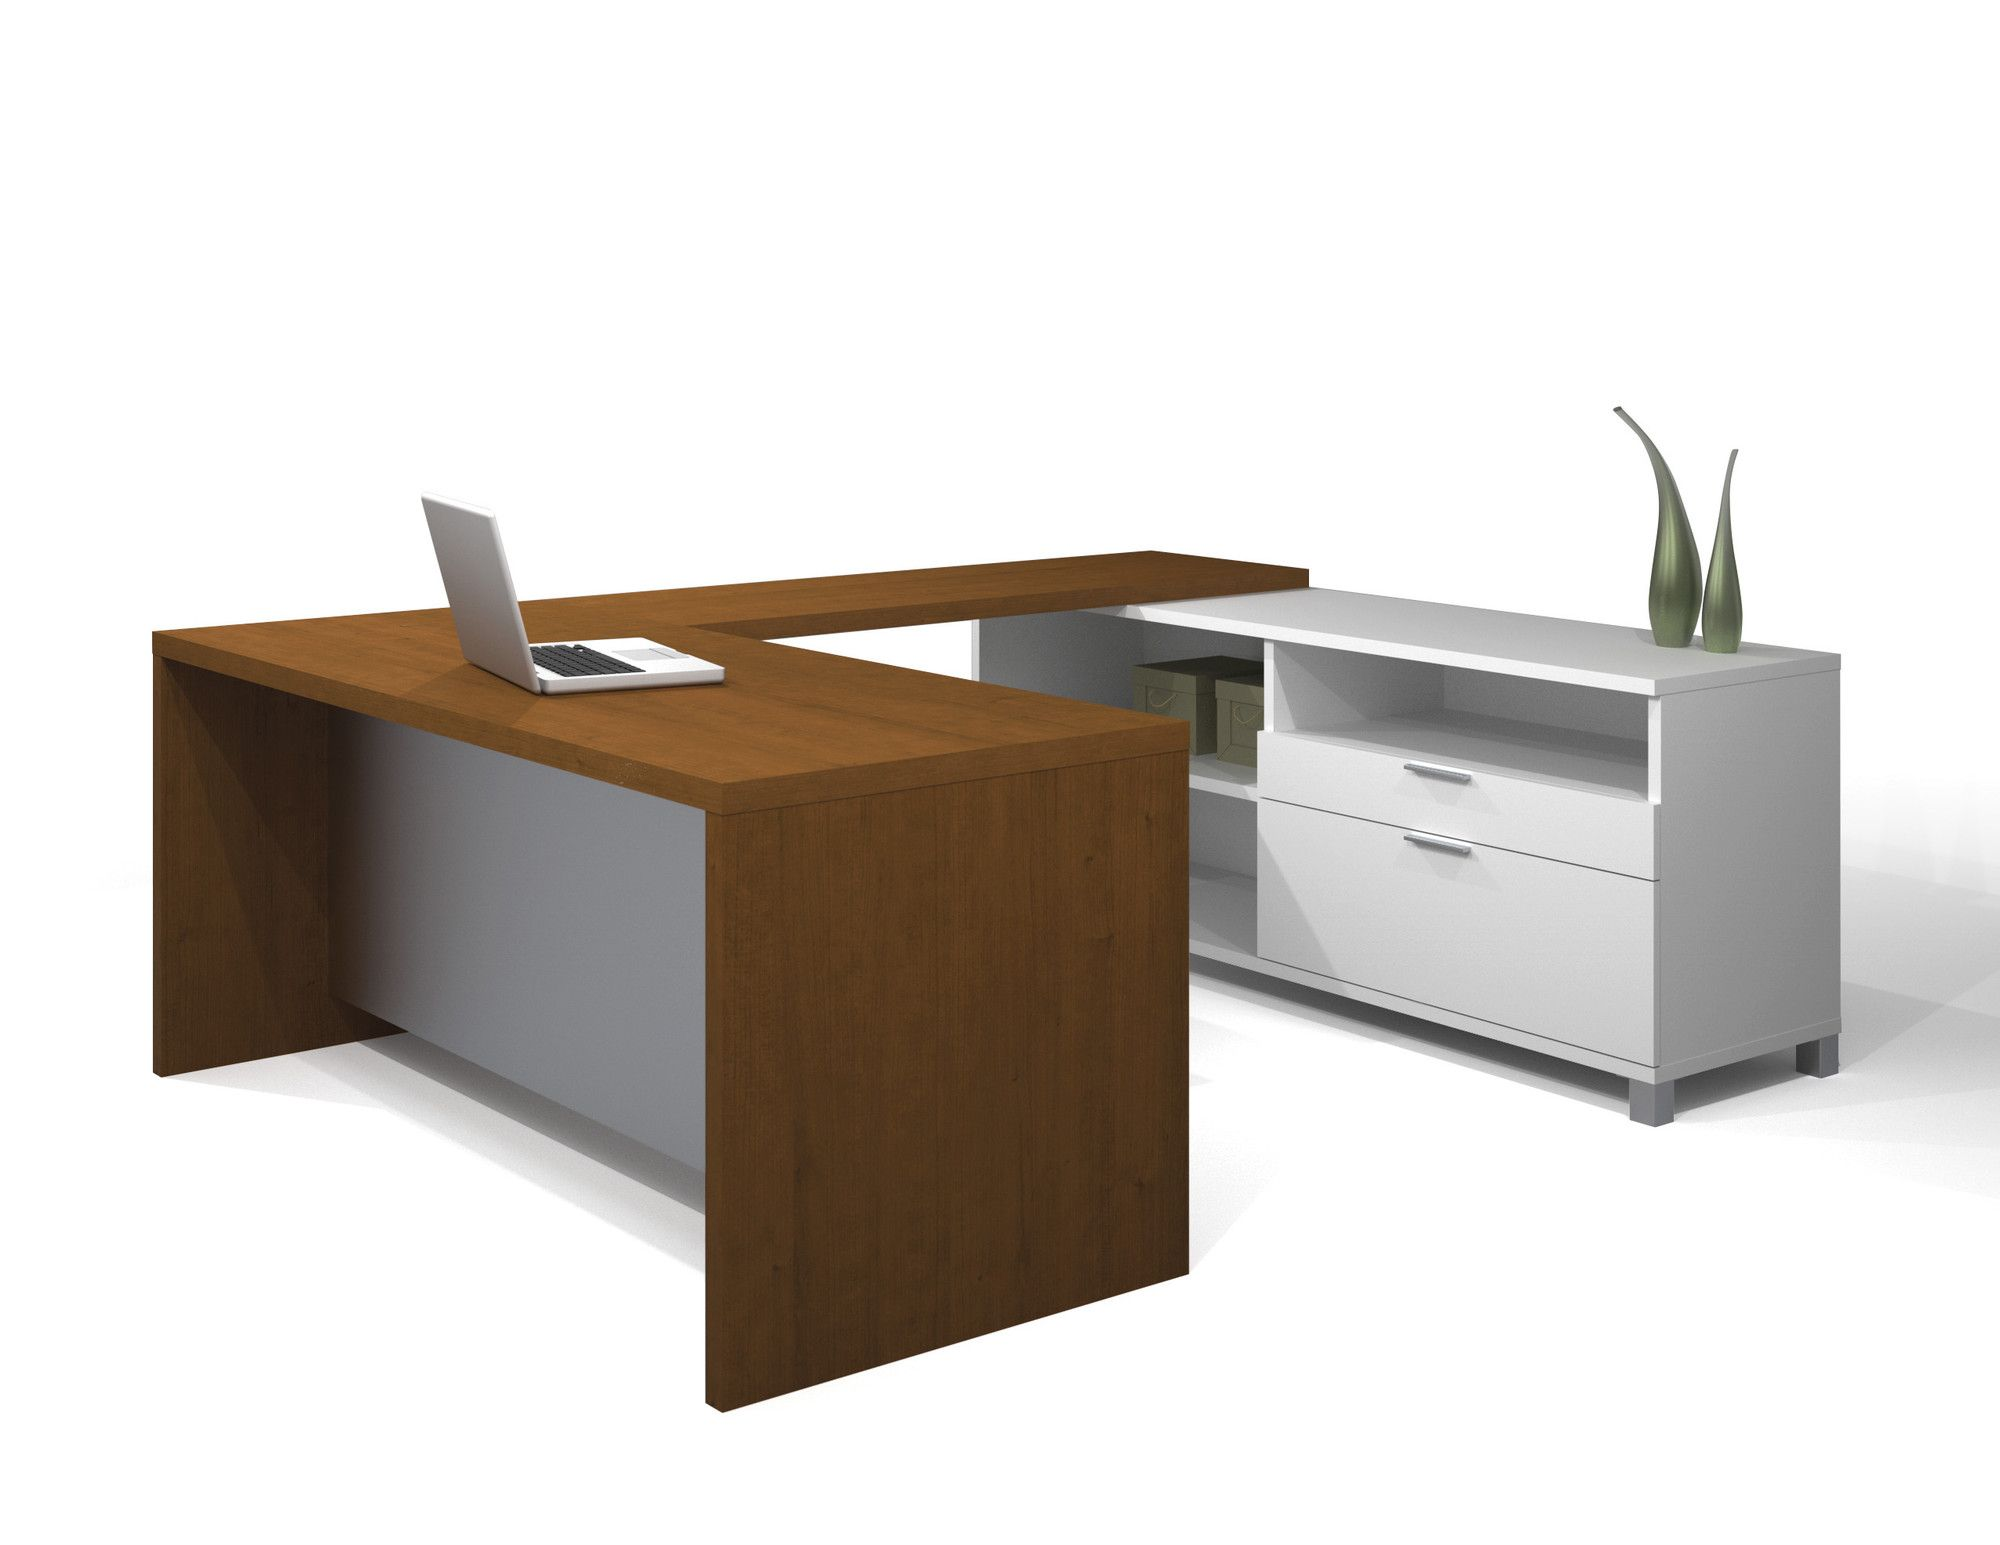 Bestar Pro Linea U Shape Desk Office Suite U0026 Reviews | Wayfair